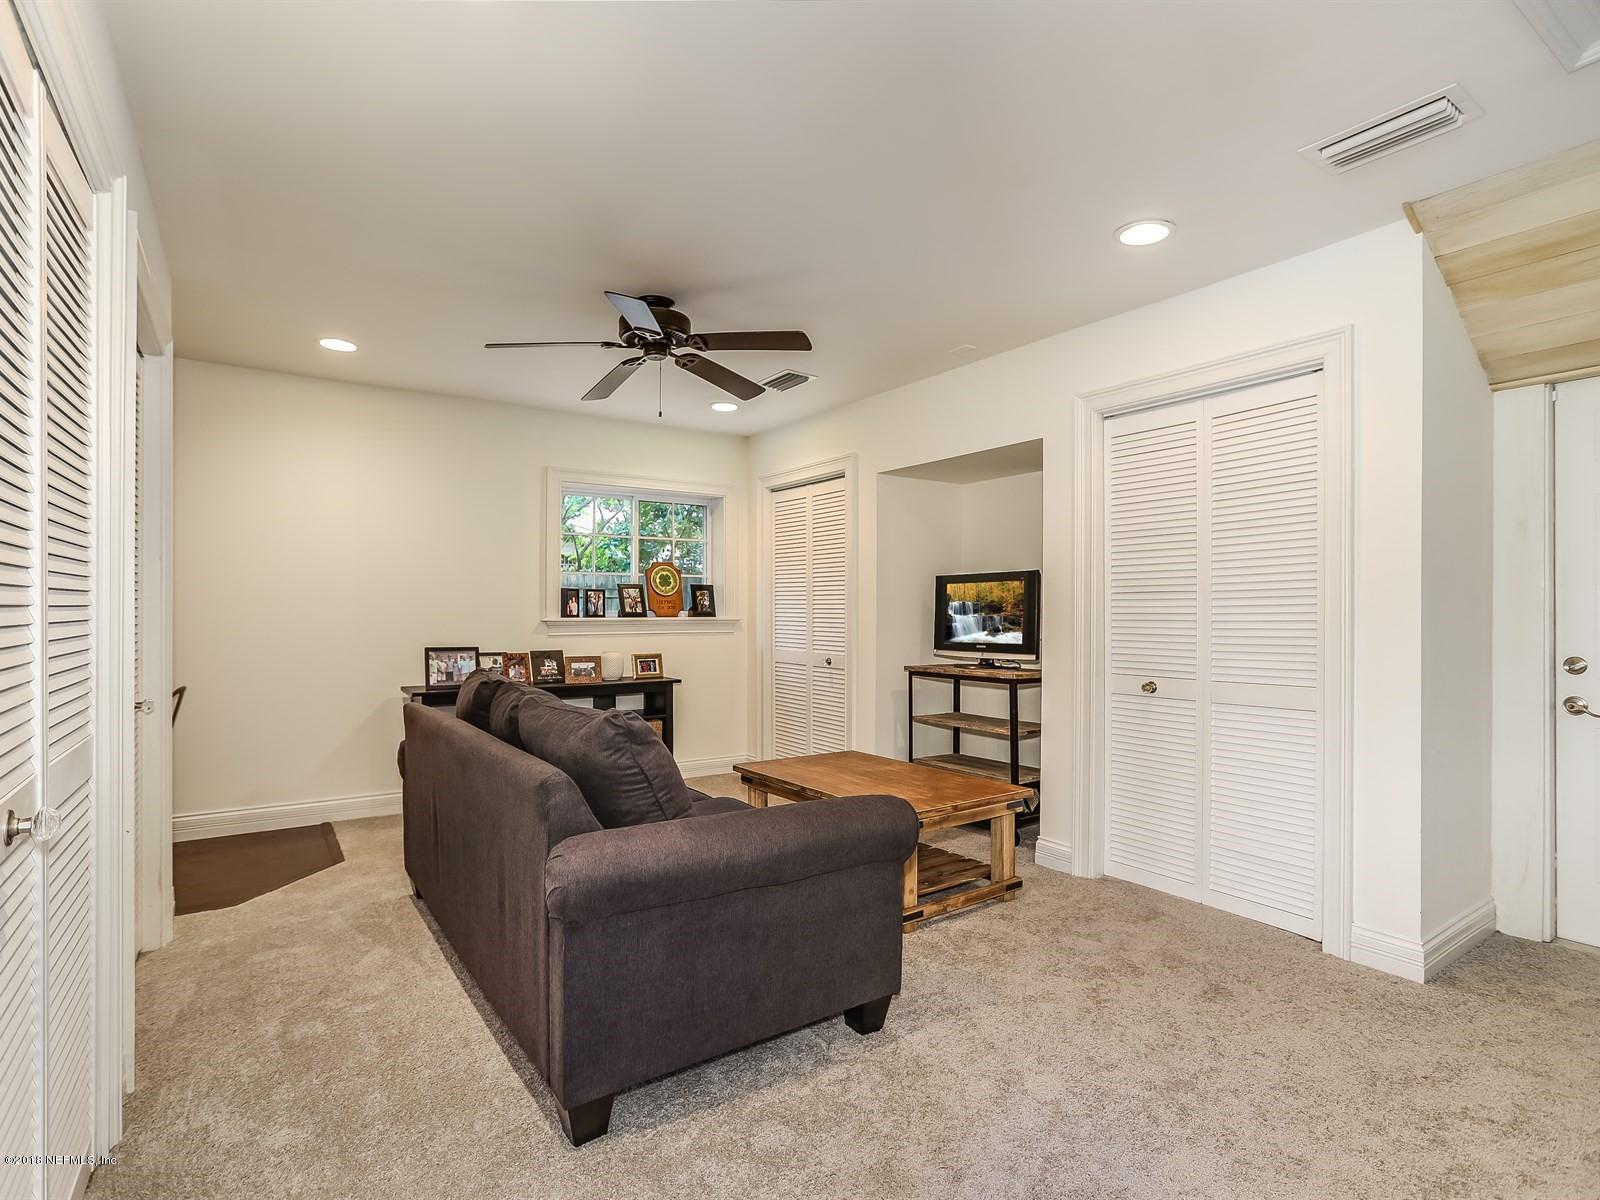 4033 COQUINA, JACKSONVILLE, FLORIDA 32250, 3 Bedrooms Bedrooms, ,2 BathroomsBathrooms,Residential - single family,For sale,COQUINA,964738